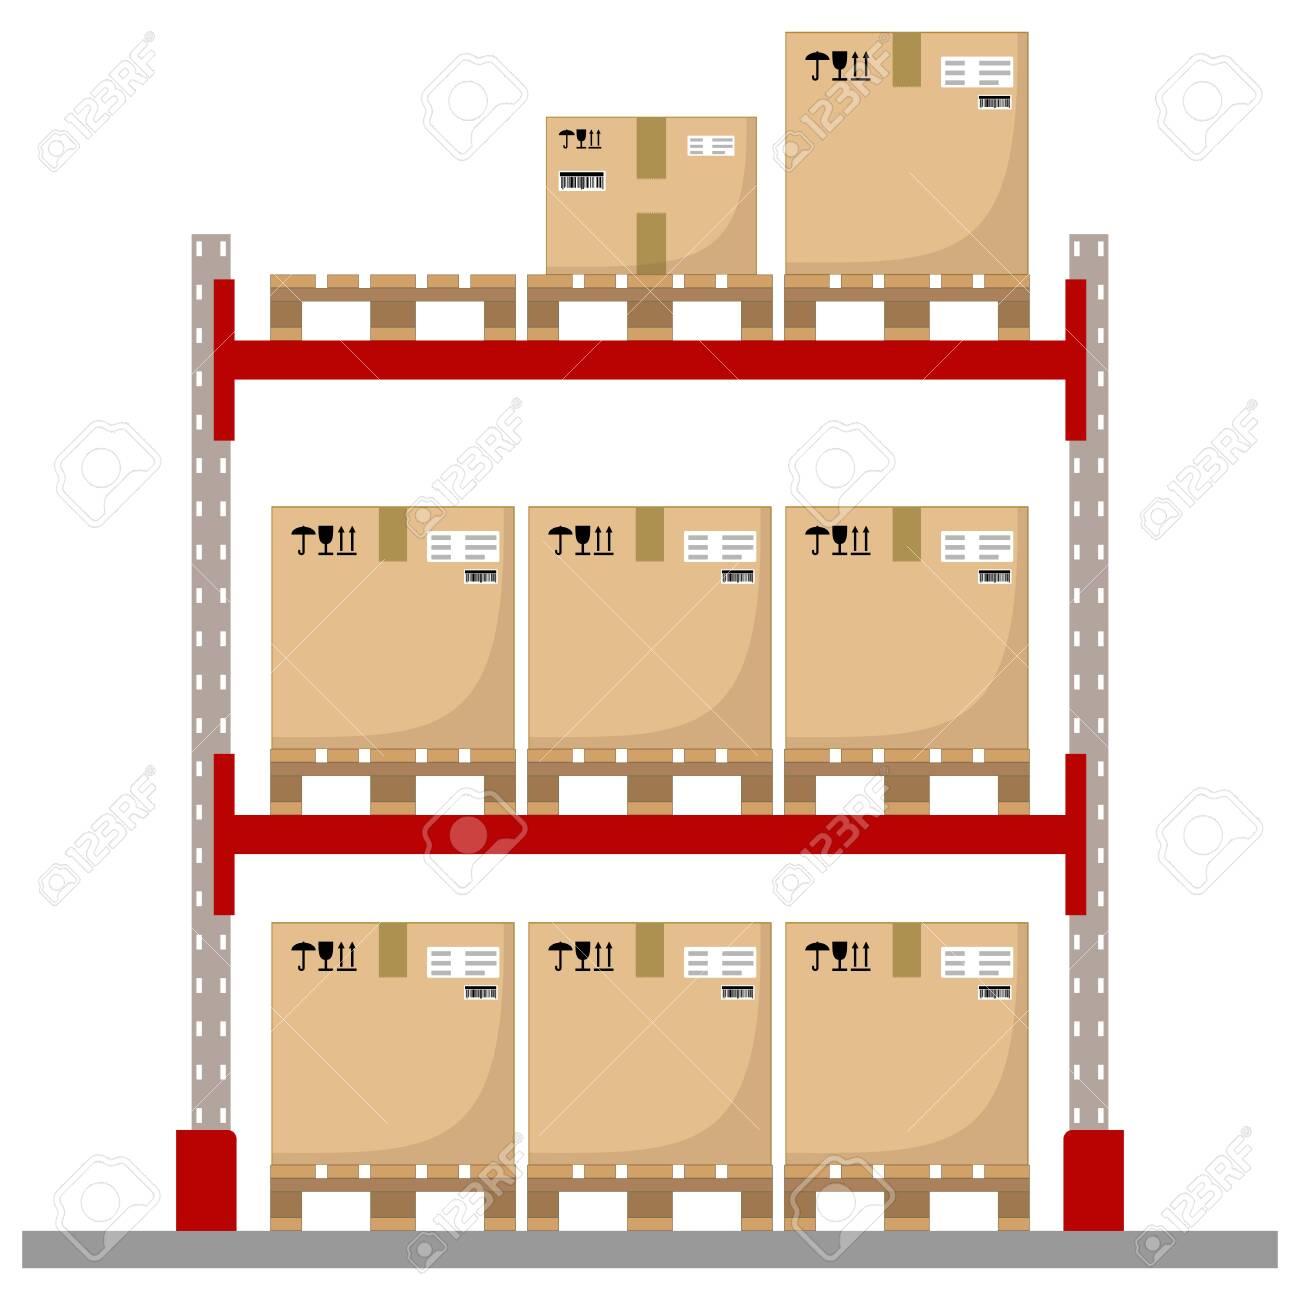 Metal racks for a warehouse with boxes on pallets. Flat design, front view. Vector illustration. - 142107840